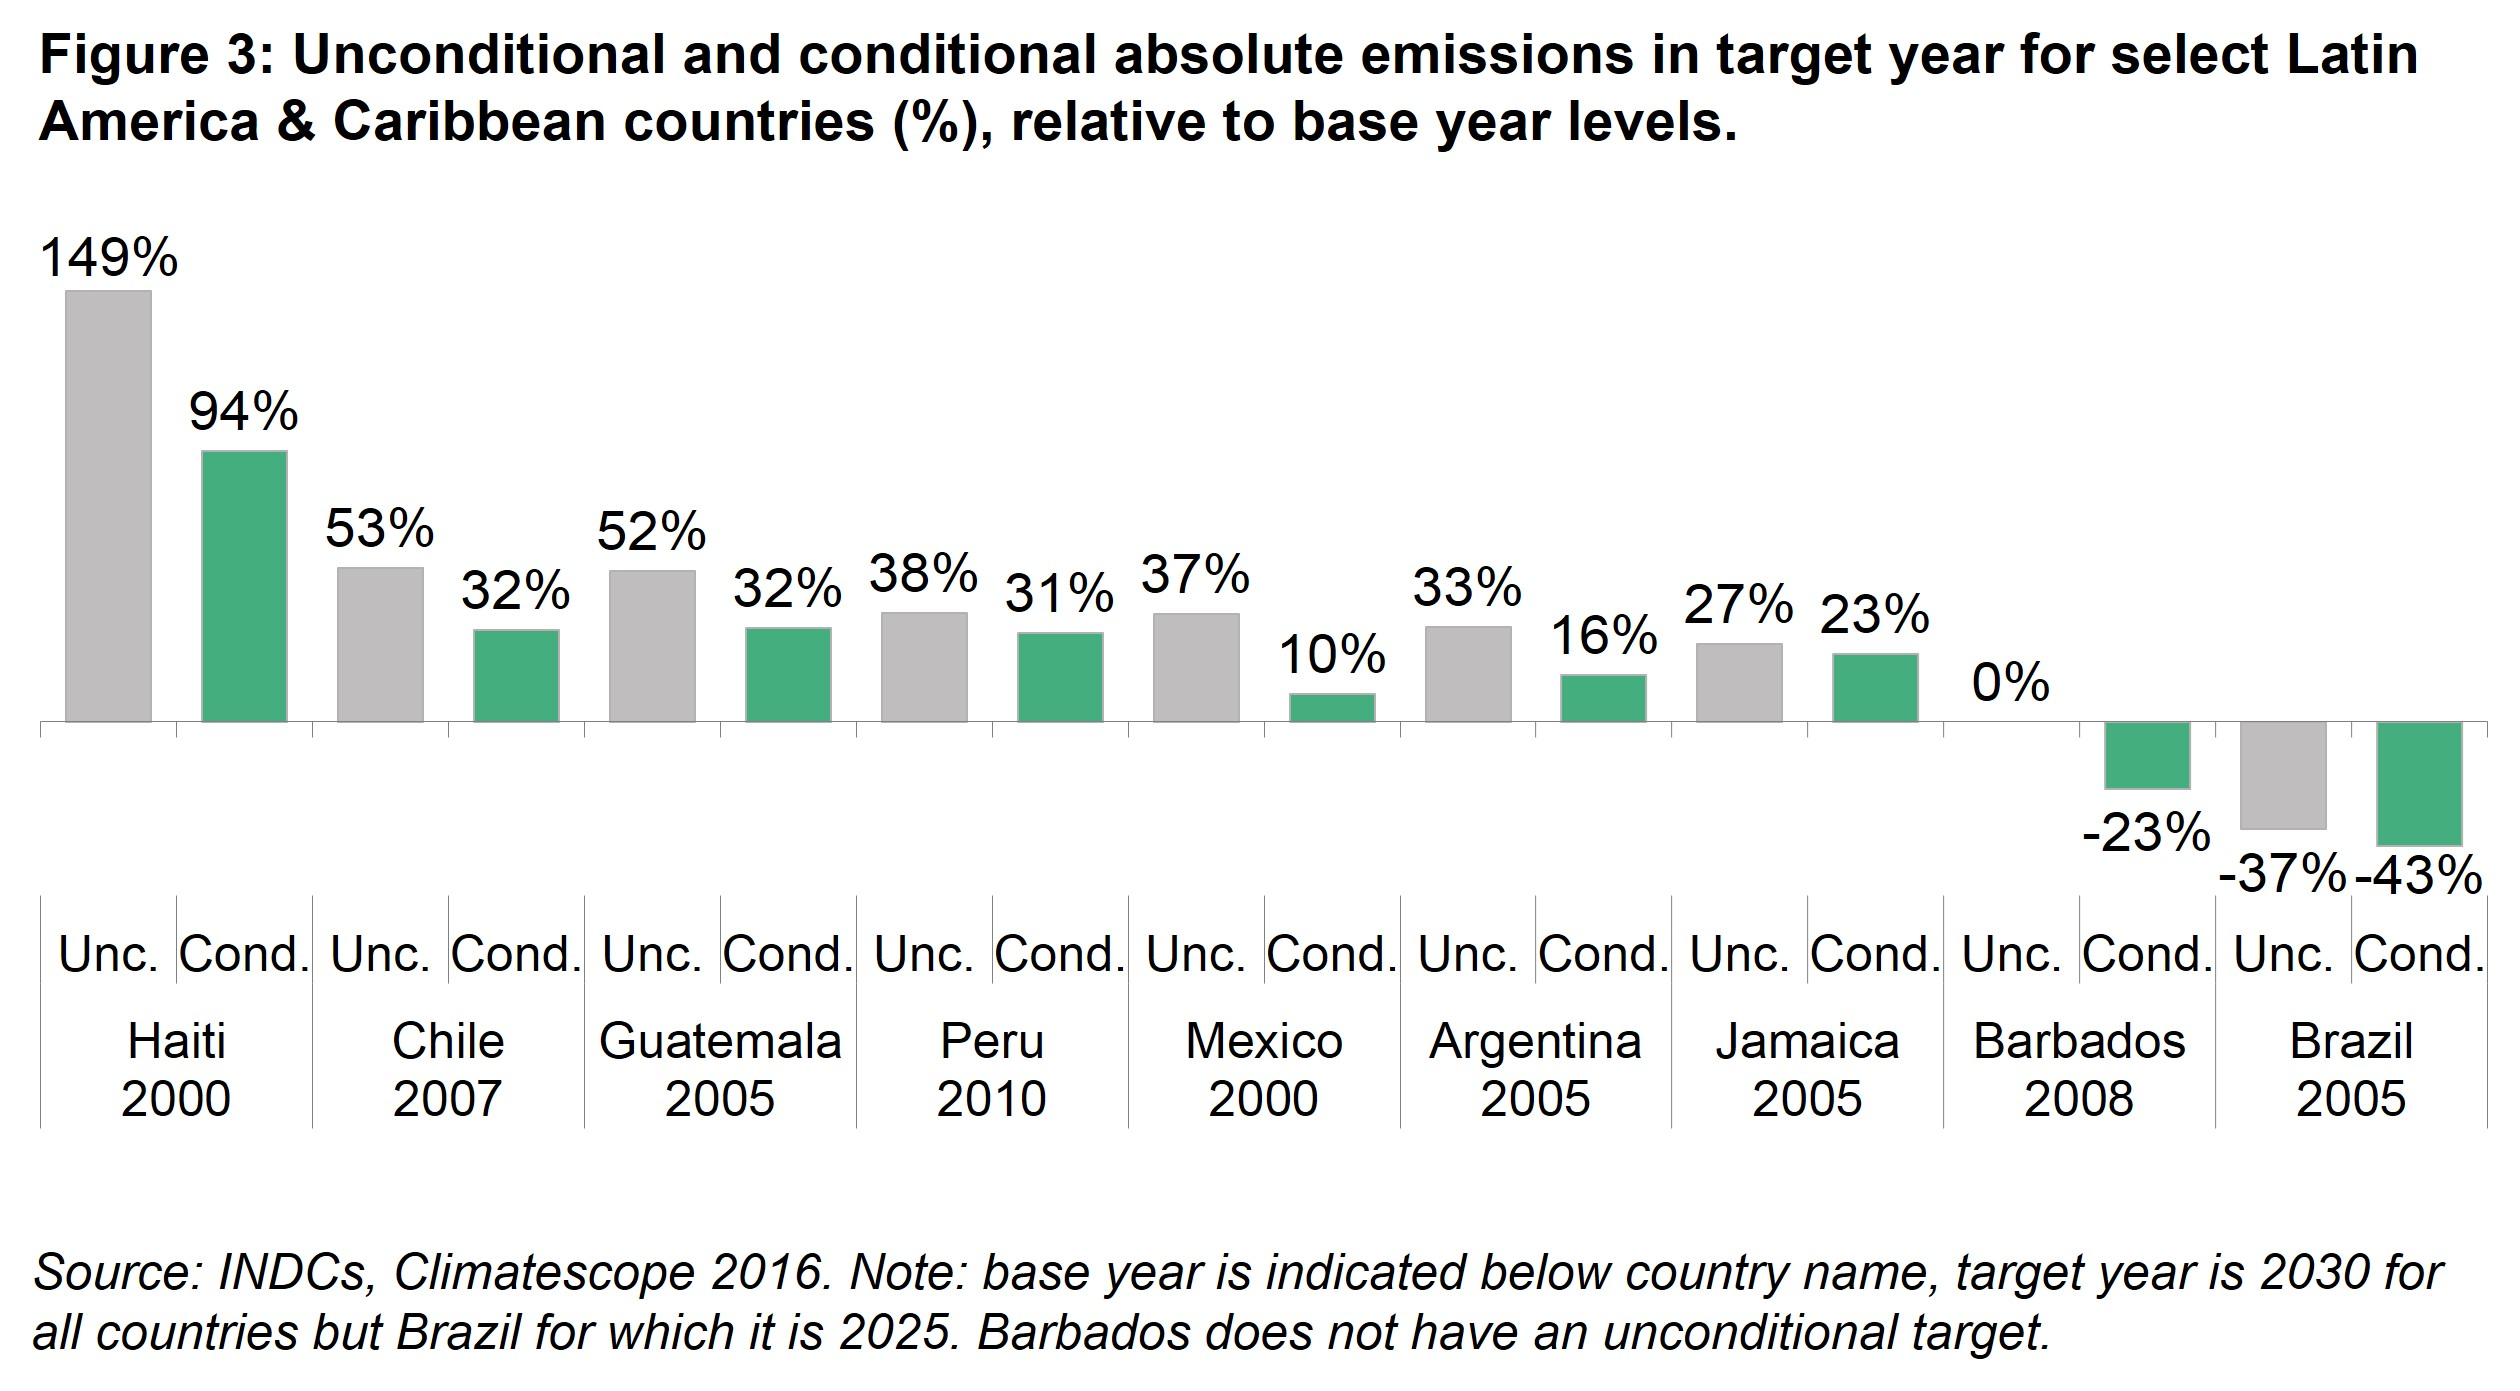 LAC Fig 3 - Unconditional and conditional absolute emissions in target year for select Latin America & Caribbean countries, relative to base year levels